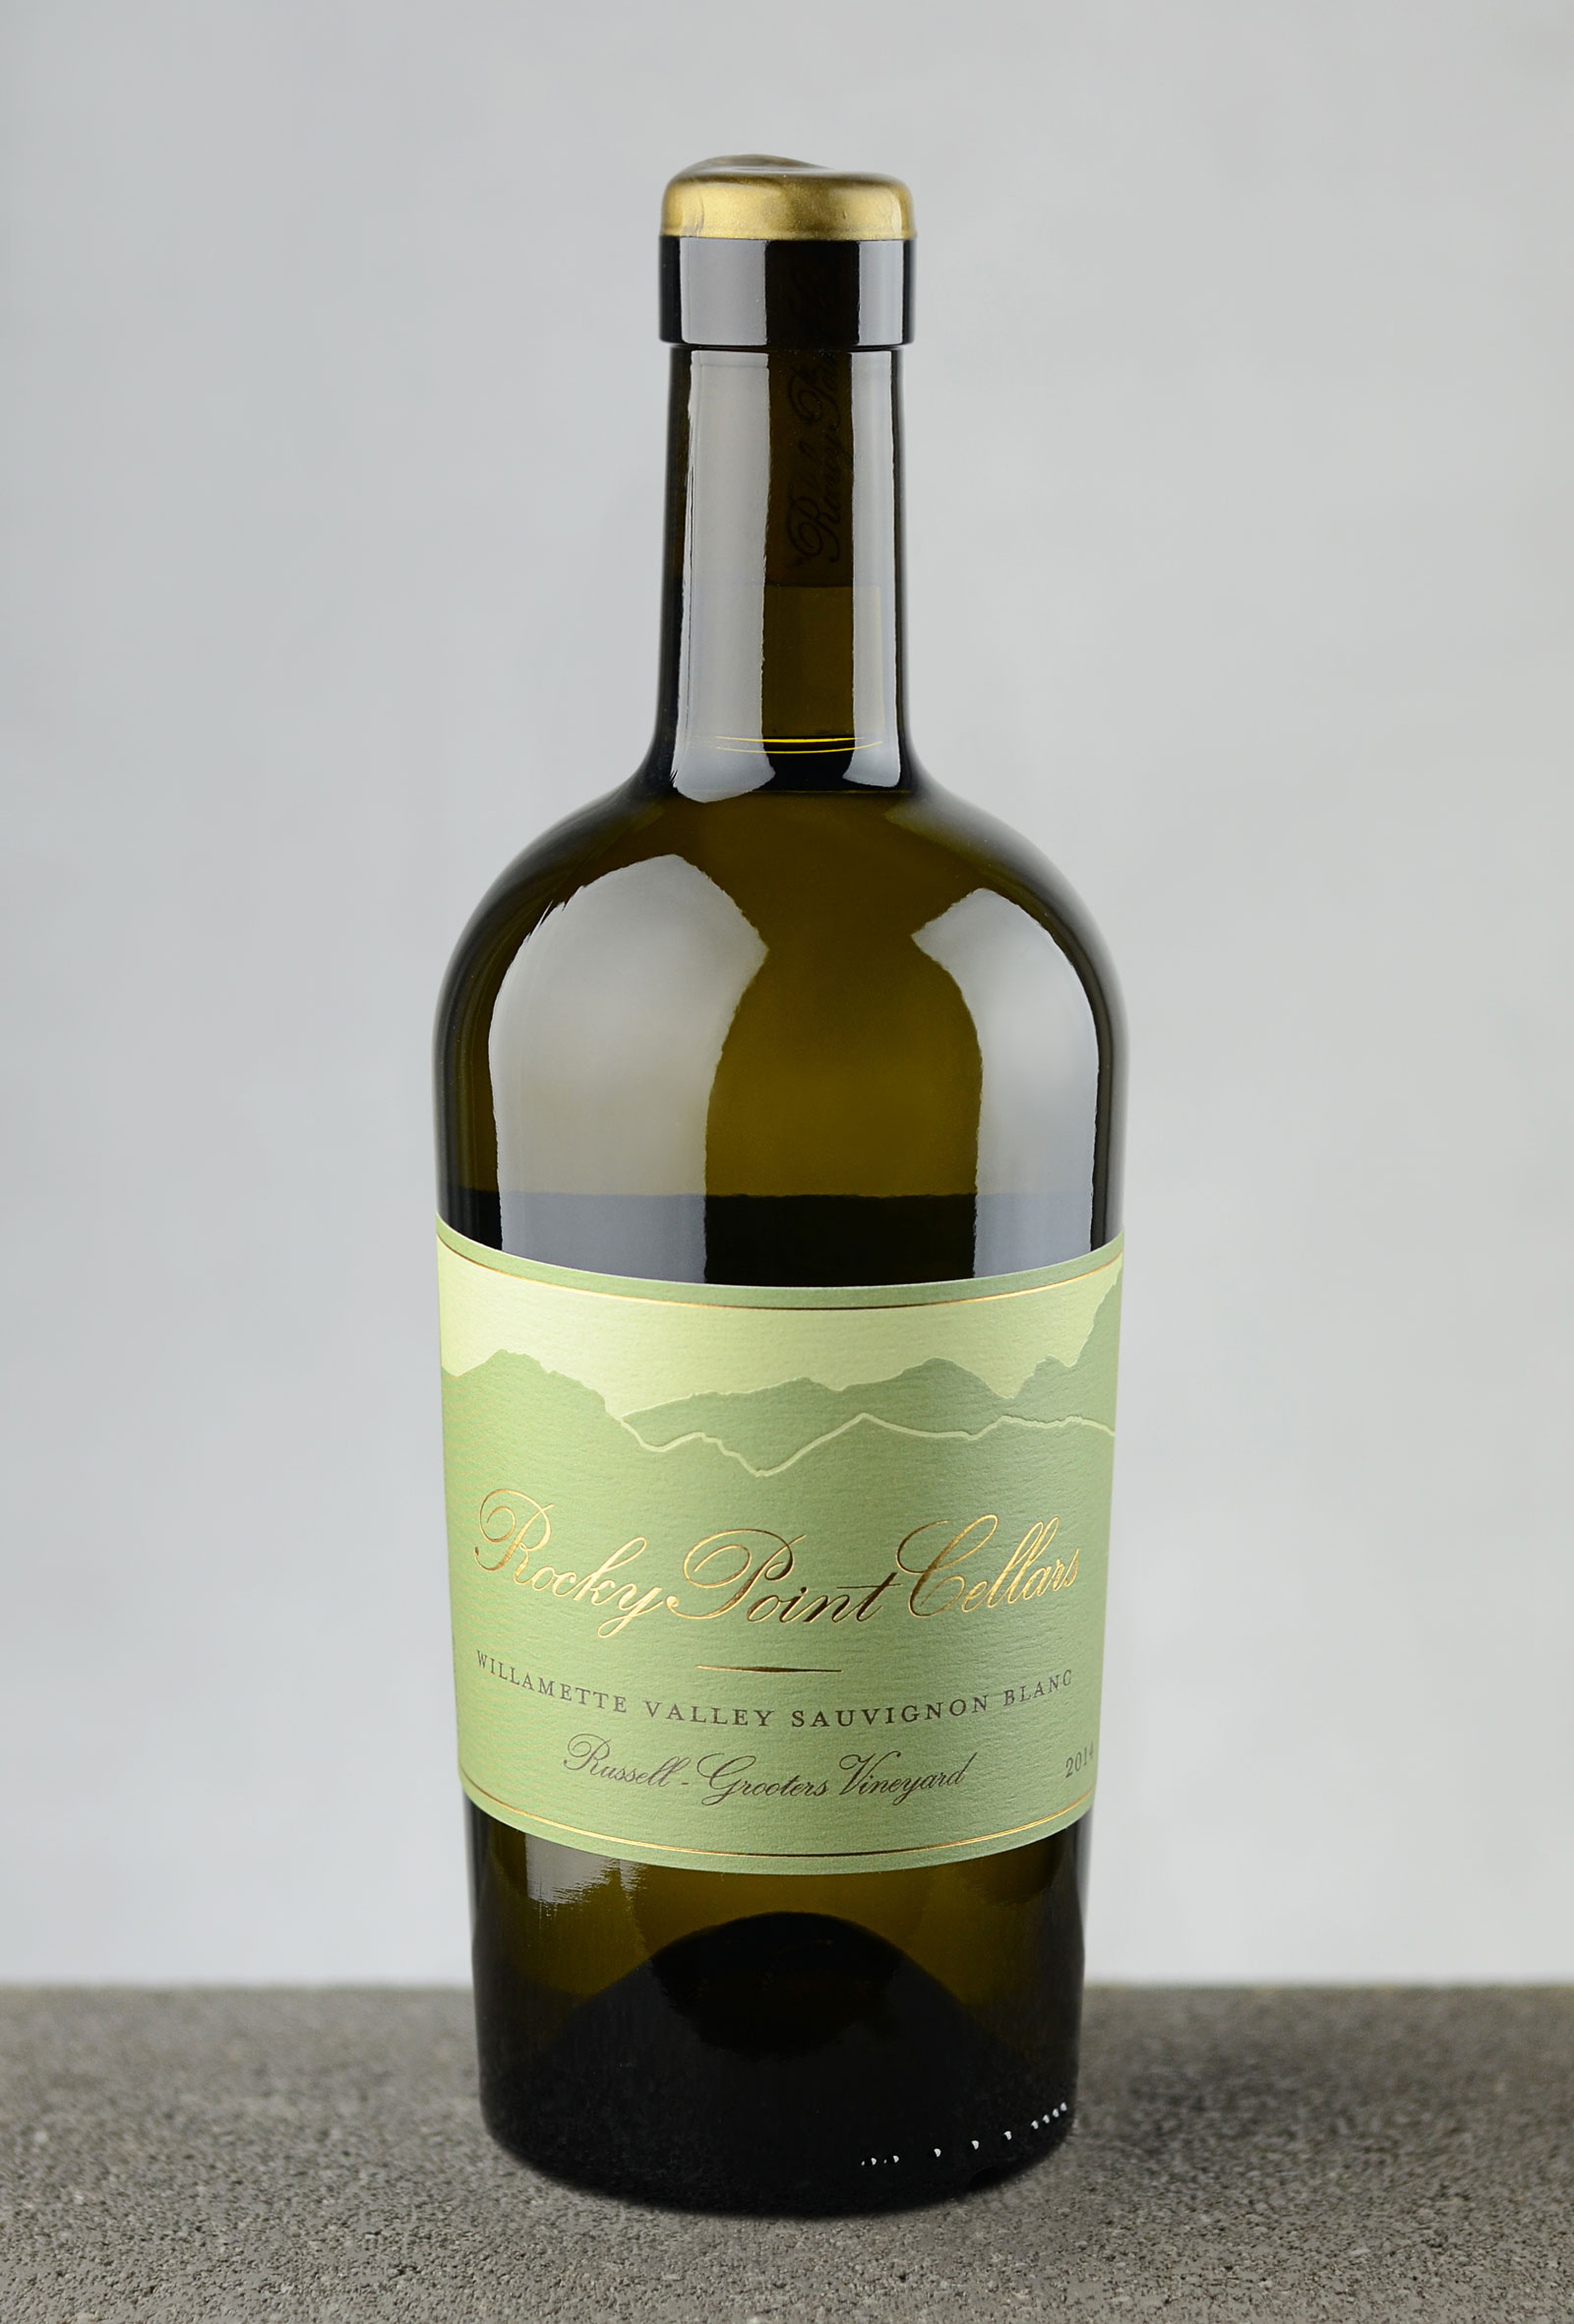 rocky-point-sauv-blanc-russell-grooters-2014.jpg